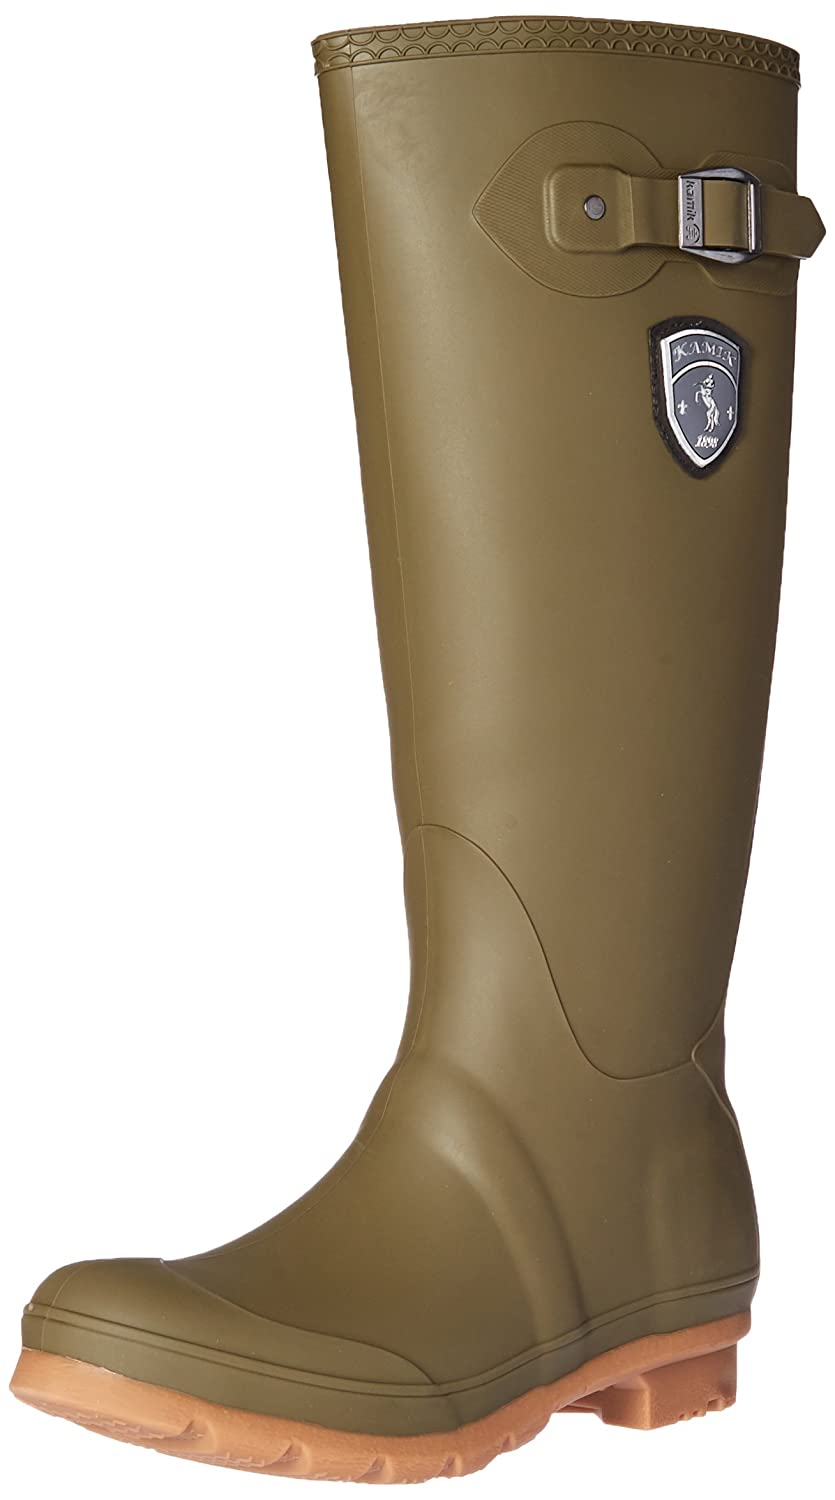 Kamik Women's Waterproof Jennifer Rain Boot B01HO0VVZQ 8 B(M) US|Olive/Gum